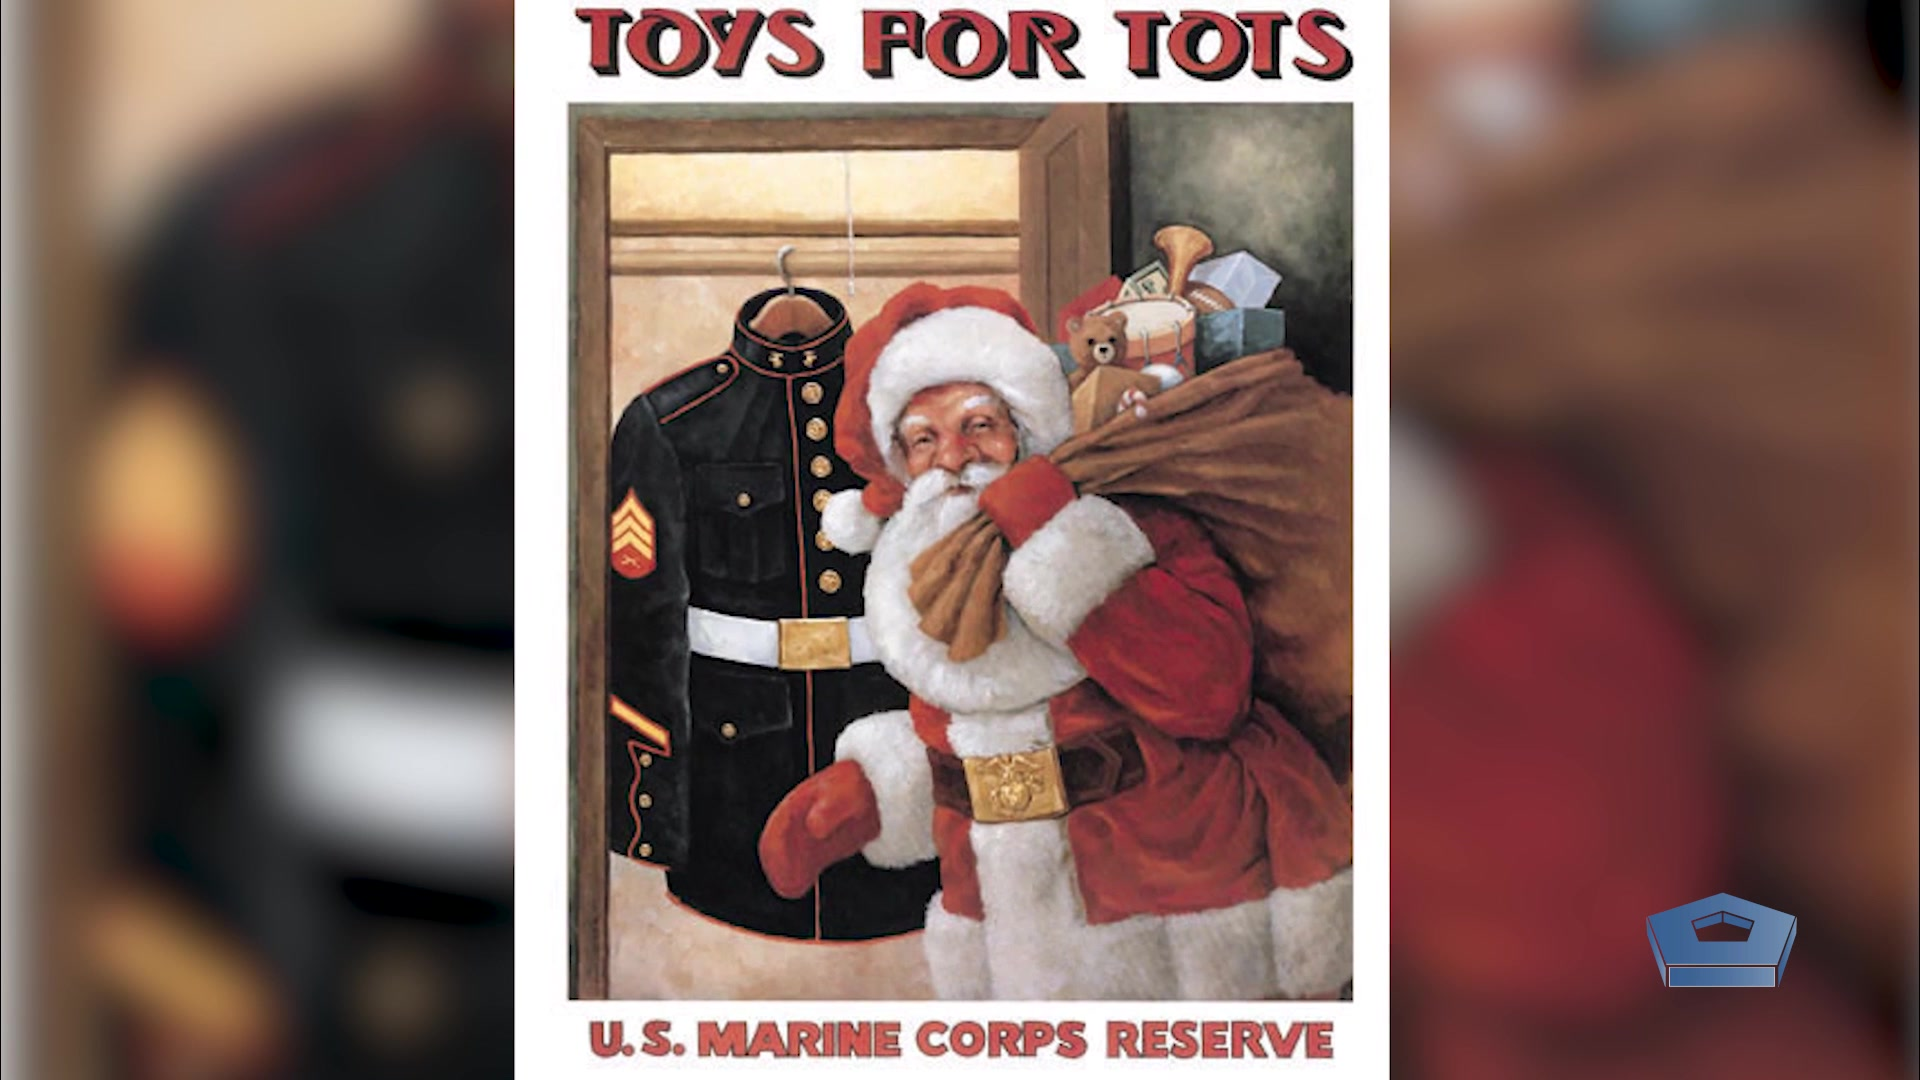 A short history of the Toys for Tots program.